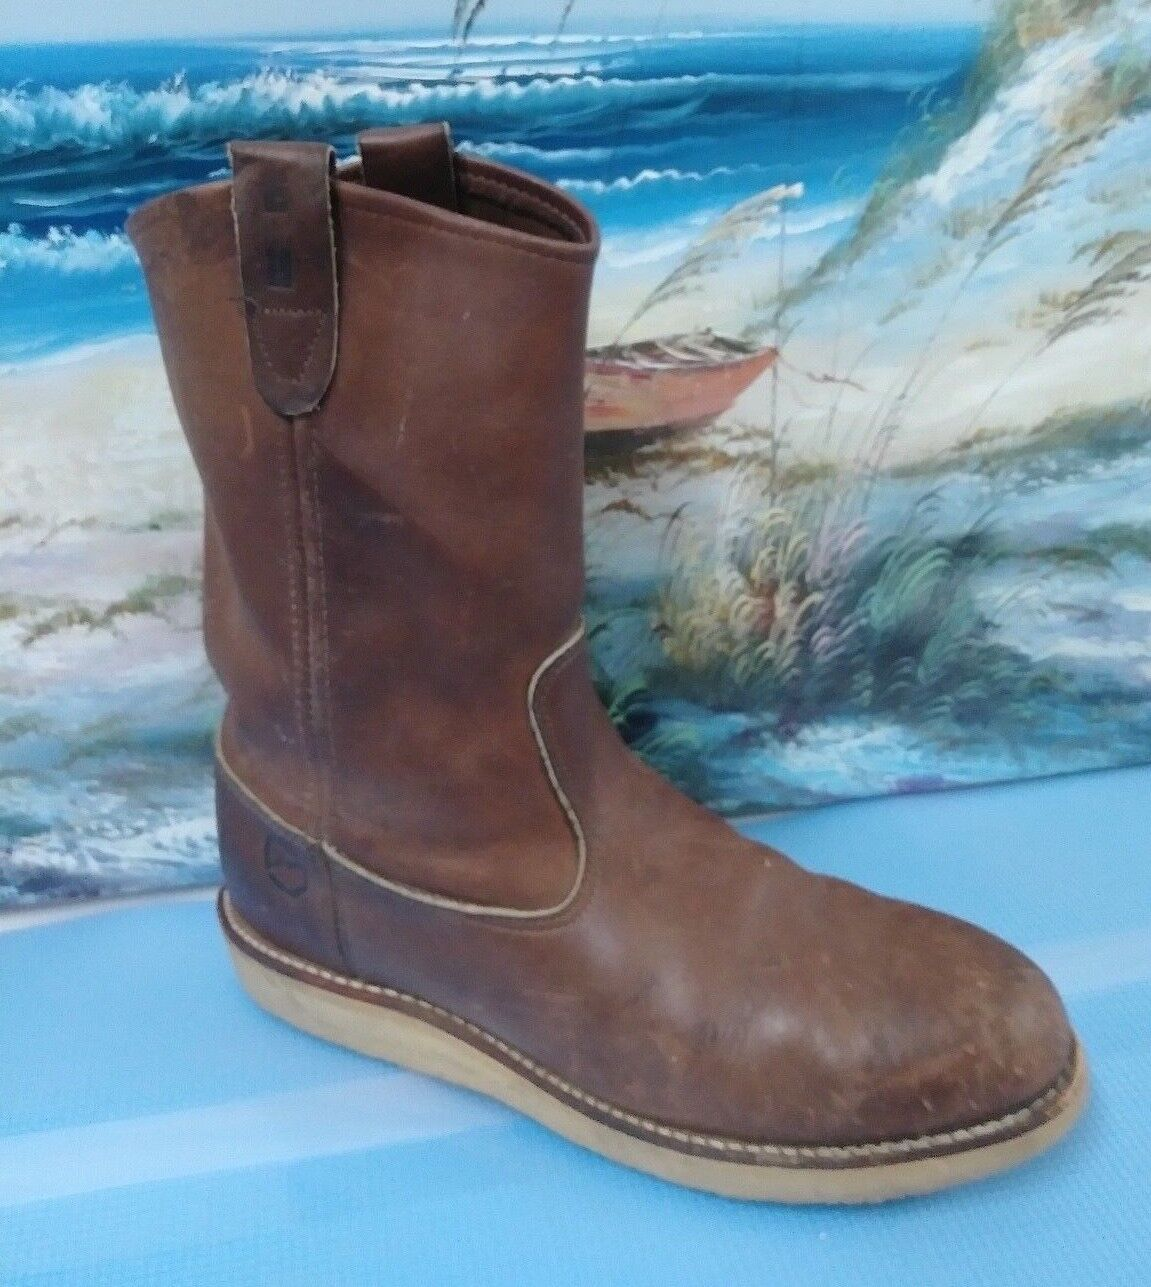 VTG MENS DOUBLE H COWBOY WORK LEATHER BROWN BOOTS SIZE 8 D STYLE 3112